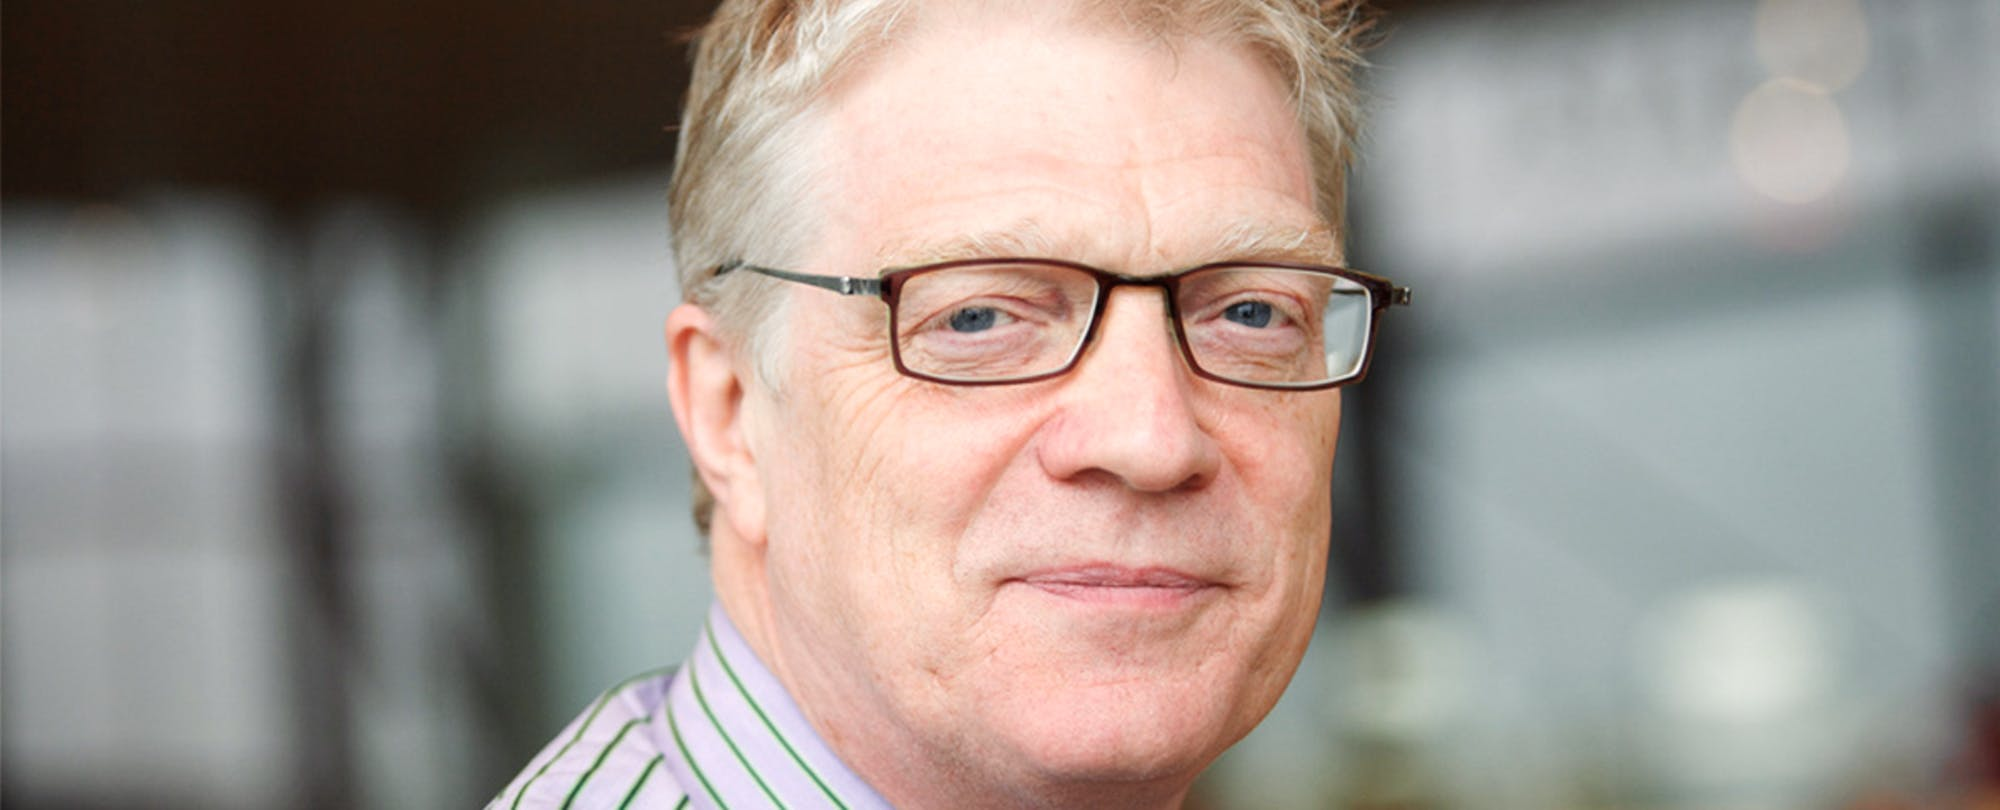 Kids Don't Fail, Schools Fail Kids: Sir Ken Robinson on the 'Learning Revolution'